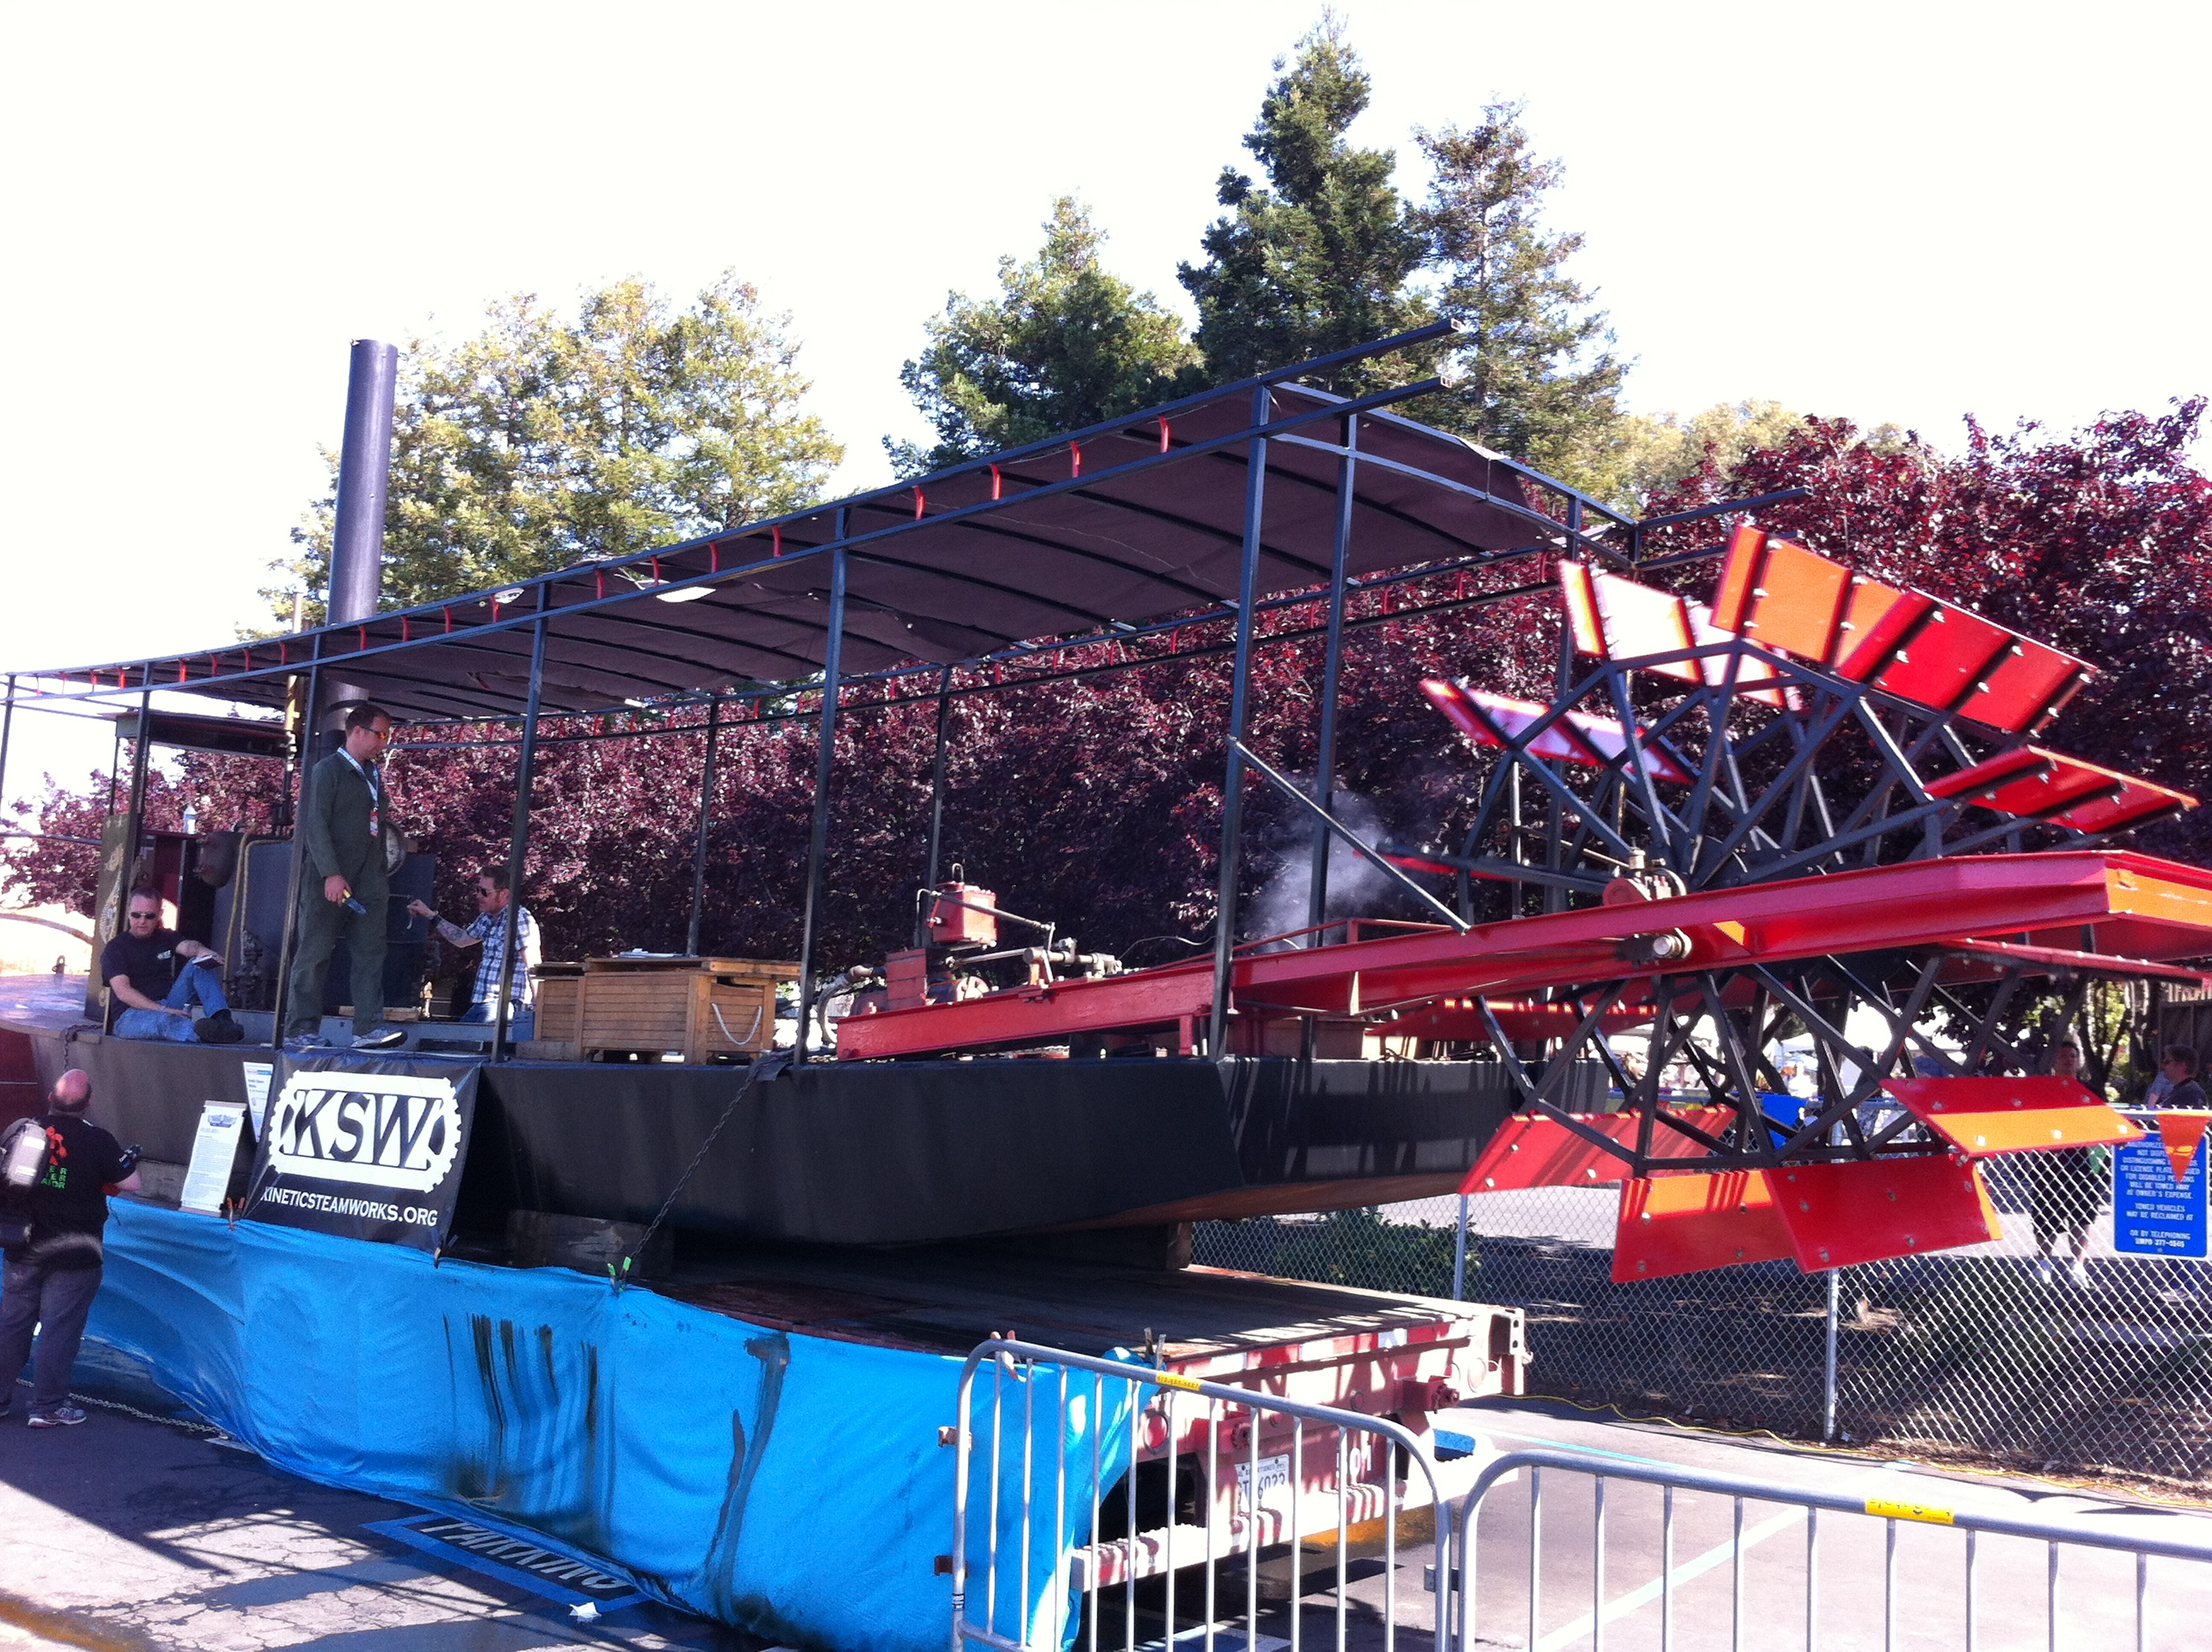 All Aboard 40-foot Steamship at Maker Faire